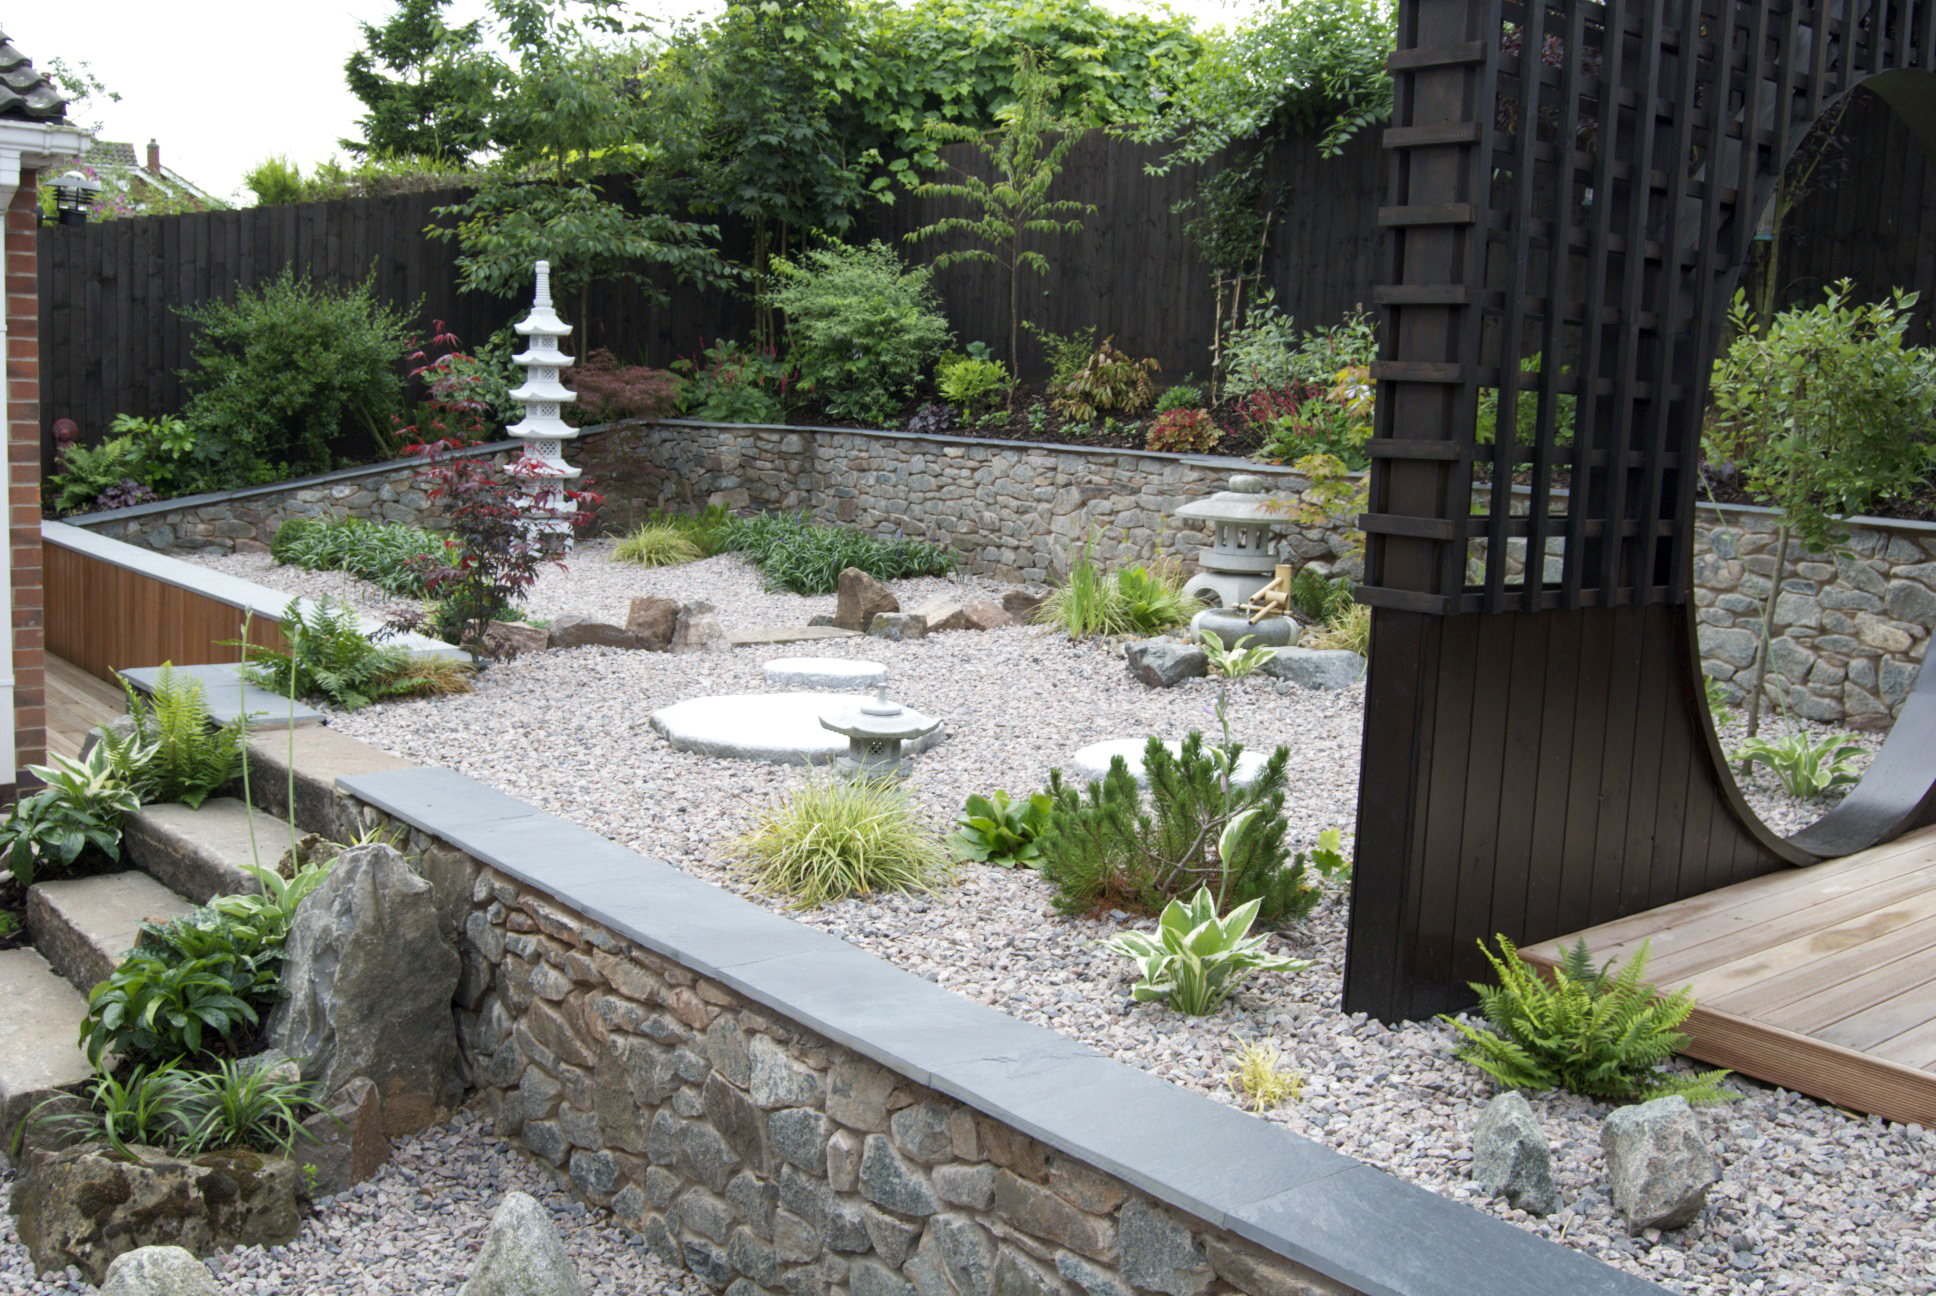 High Quality Start Dreaming Of How To Make A Japanese Garden Here! Take A Looku2026